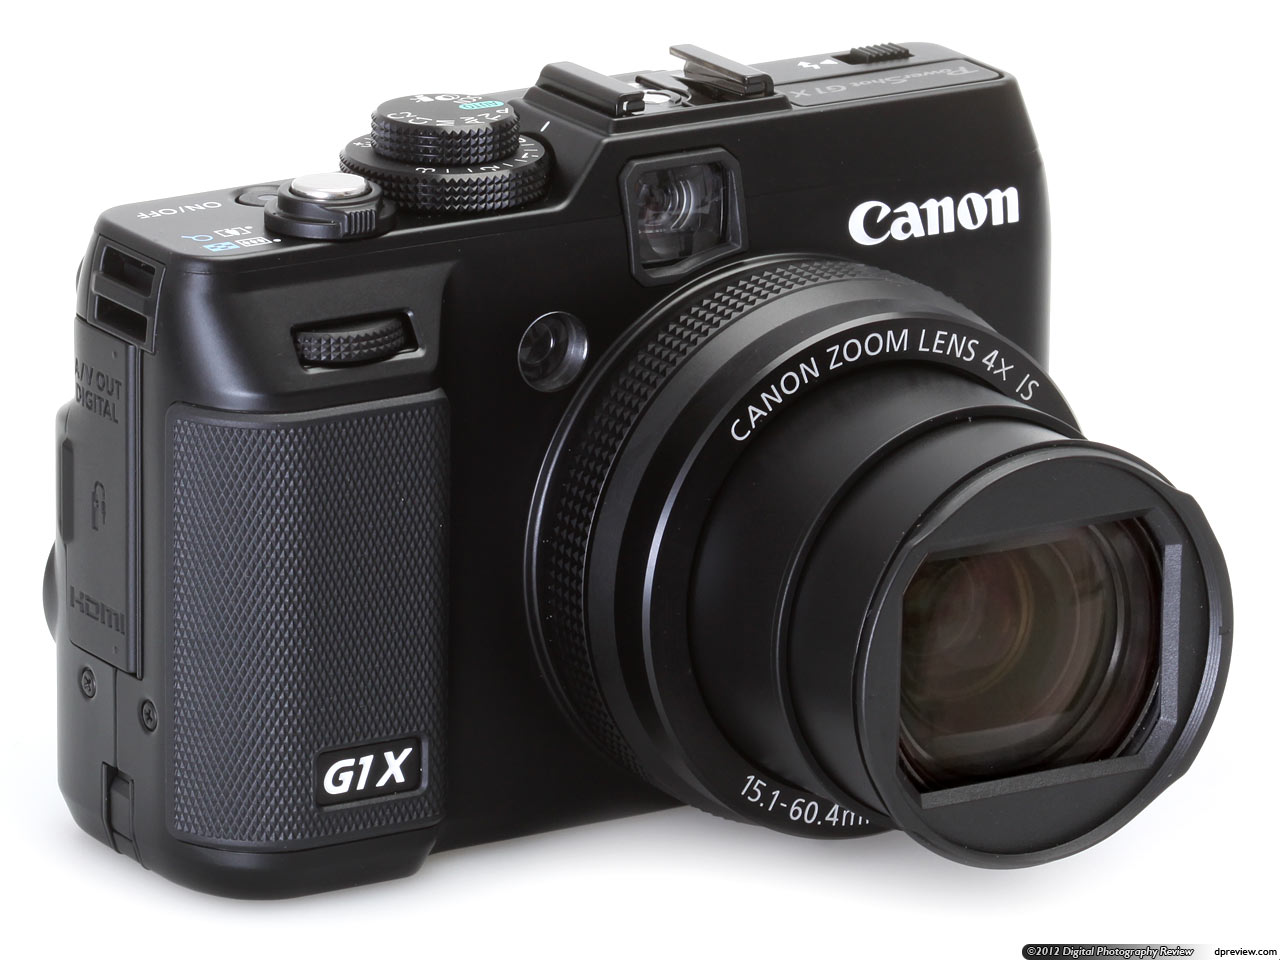 canon powershot g1x manual download